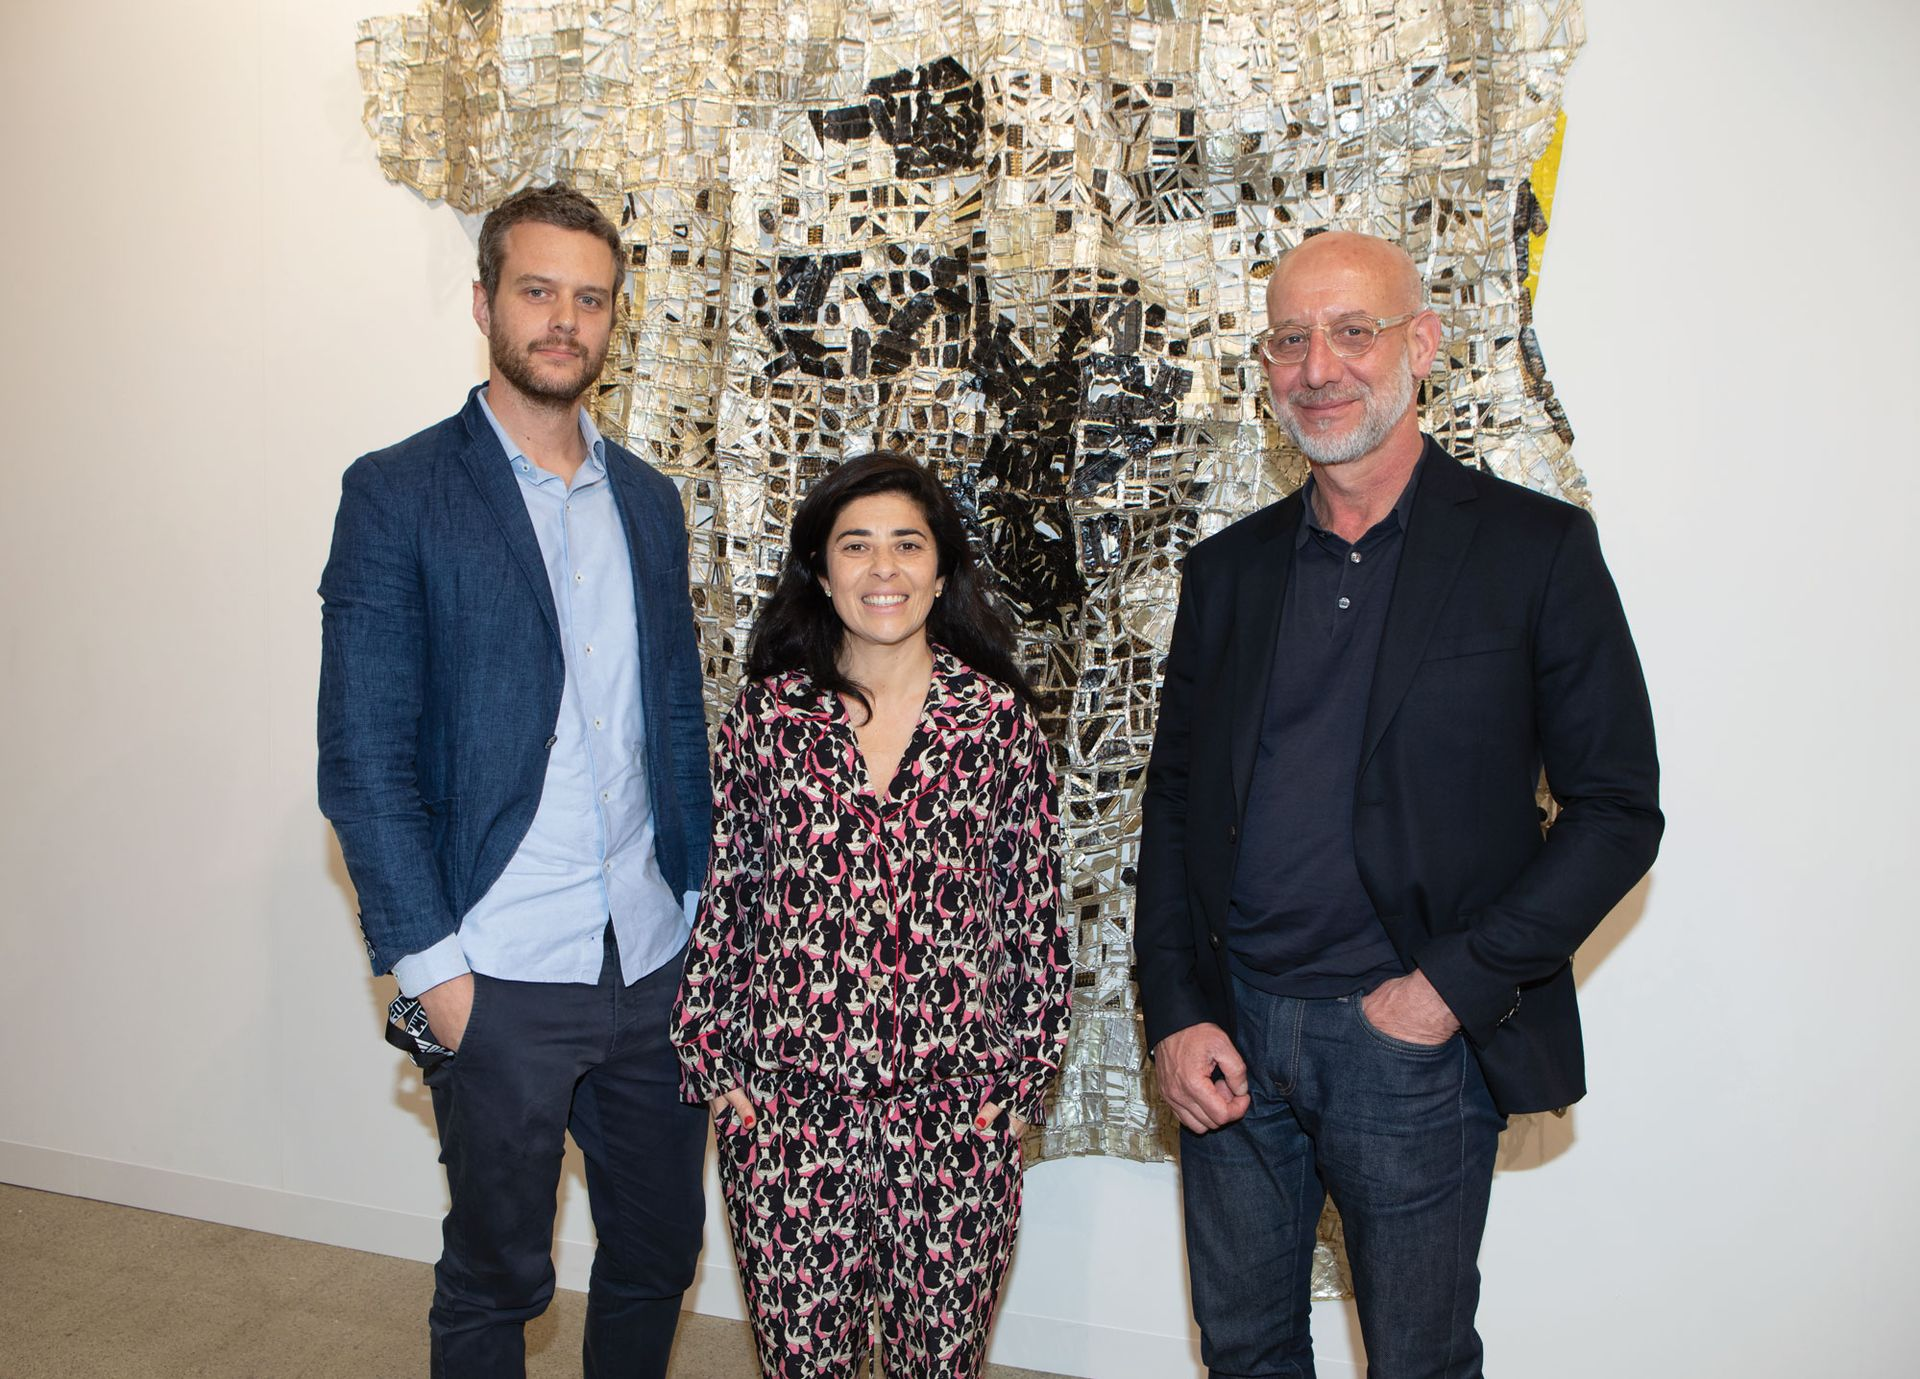 Joost Bosland from Stevenson Gallery, Liza Essers from Goodman Gallery and Jonathan Garnham from Blank Projects, who are all involved in the Art Joburg fair © David Owens